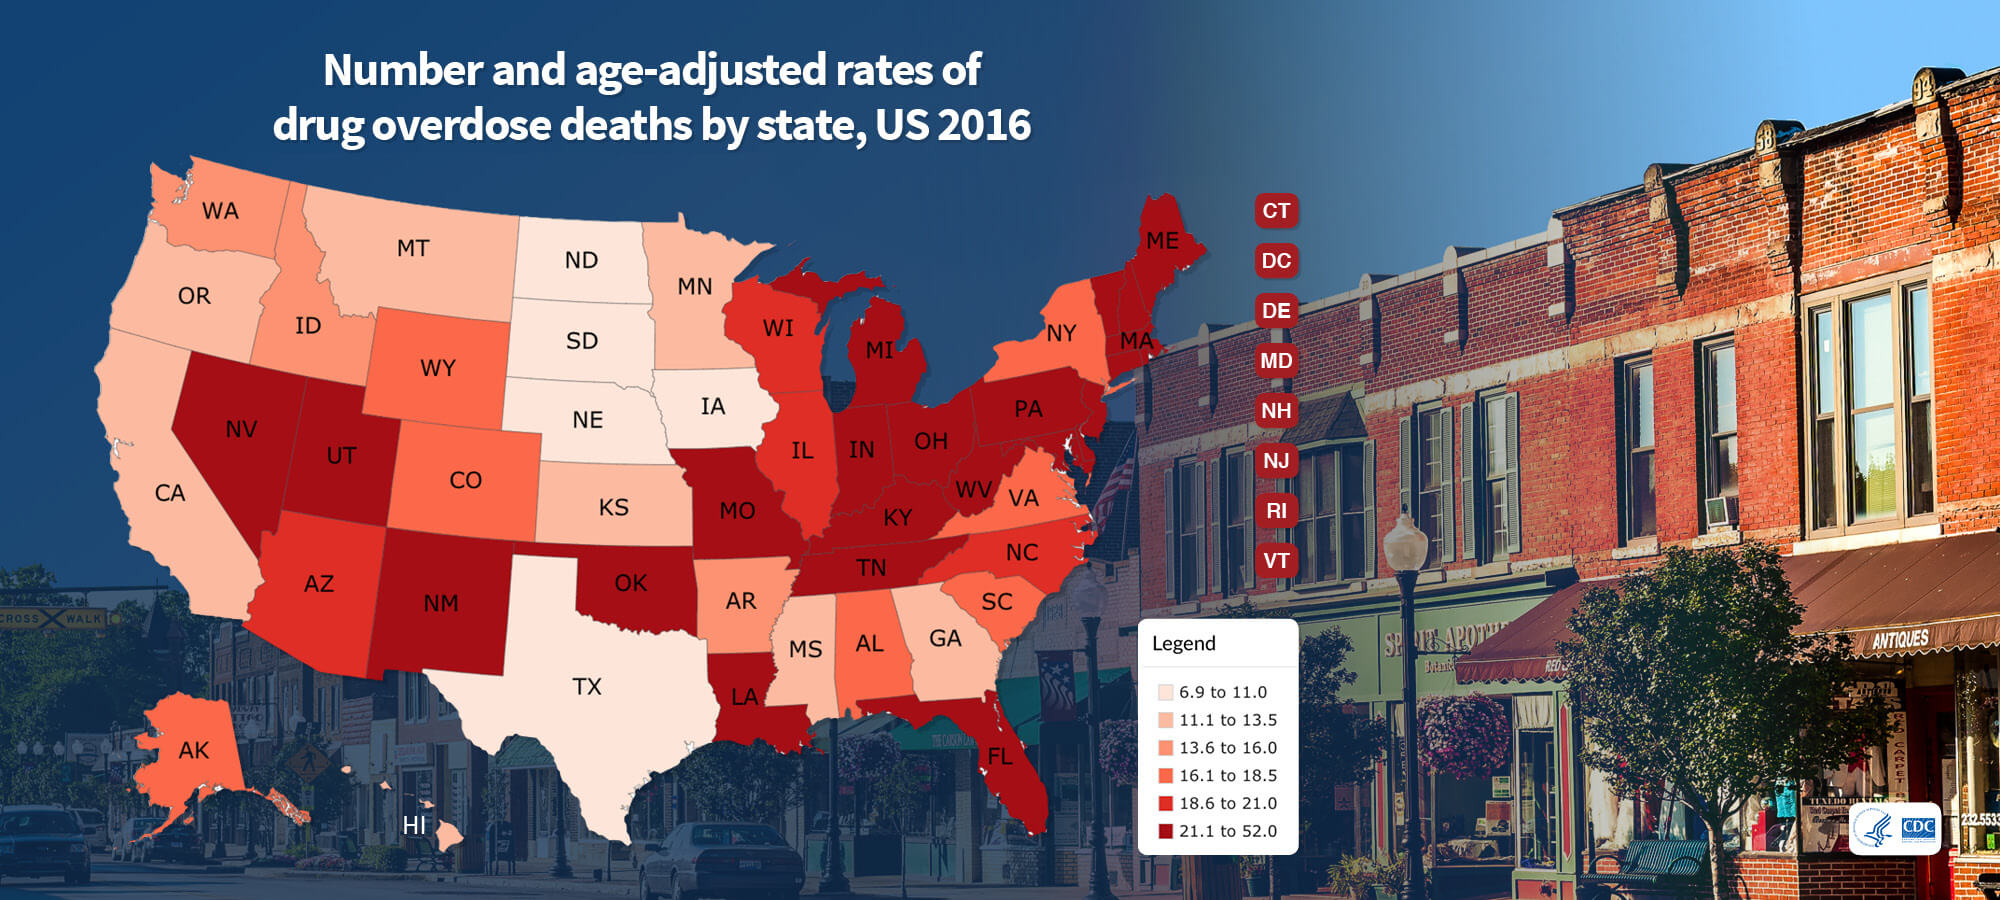 Number and age-adjusted rates of drug overdose deaths by state, US 2016